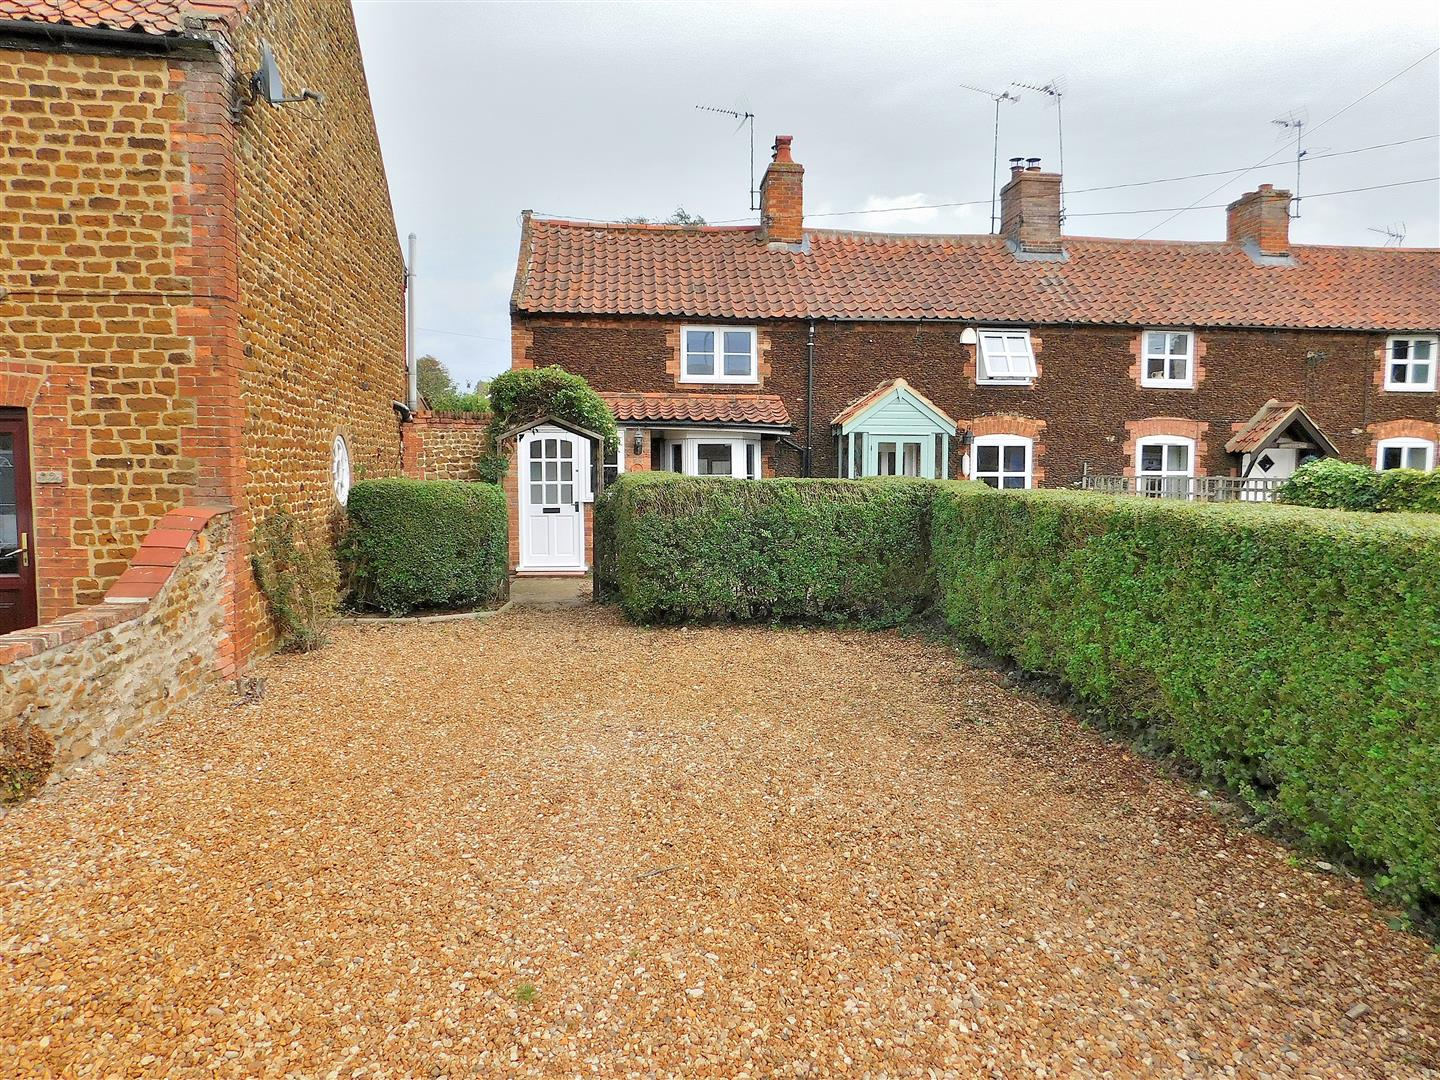 2 bed cottage for sale in King's Lynn, PE31 6PN - Property Image 1